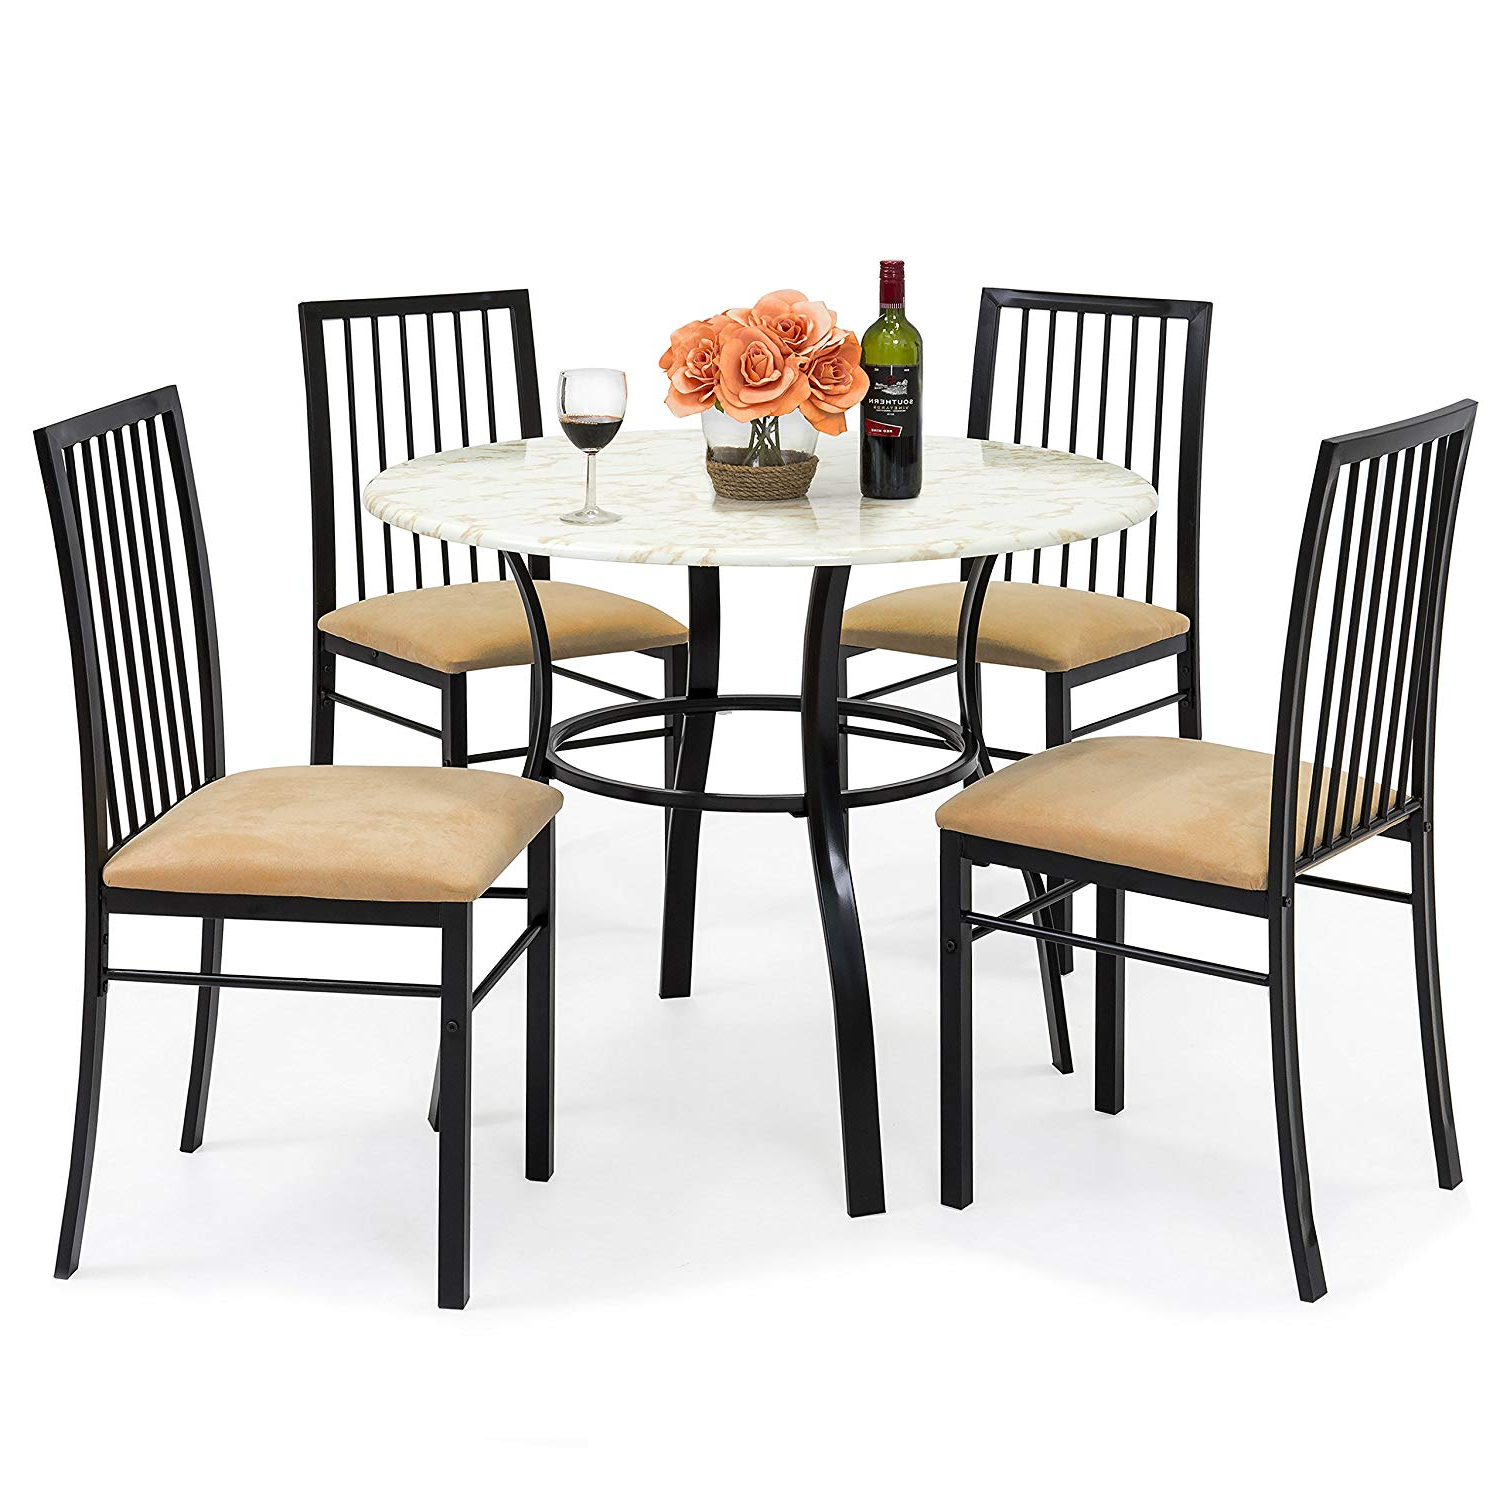 Evellen 5 Piece Solid Wood Dining Sets (set Of 5) For Popular Best Choice Products 5 Piece Faux Marble Top Dining Table And Chairs Set (View 2 of 20)